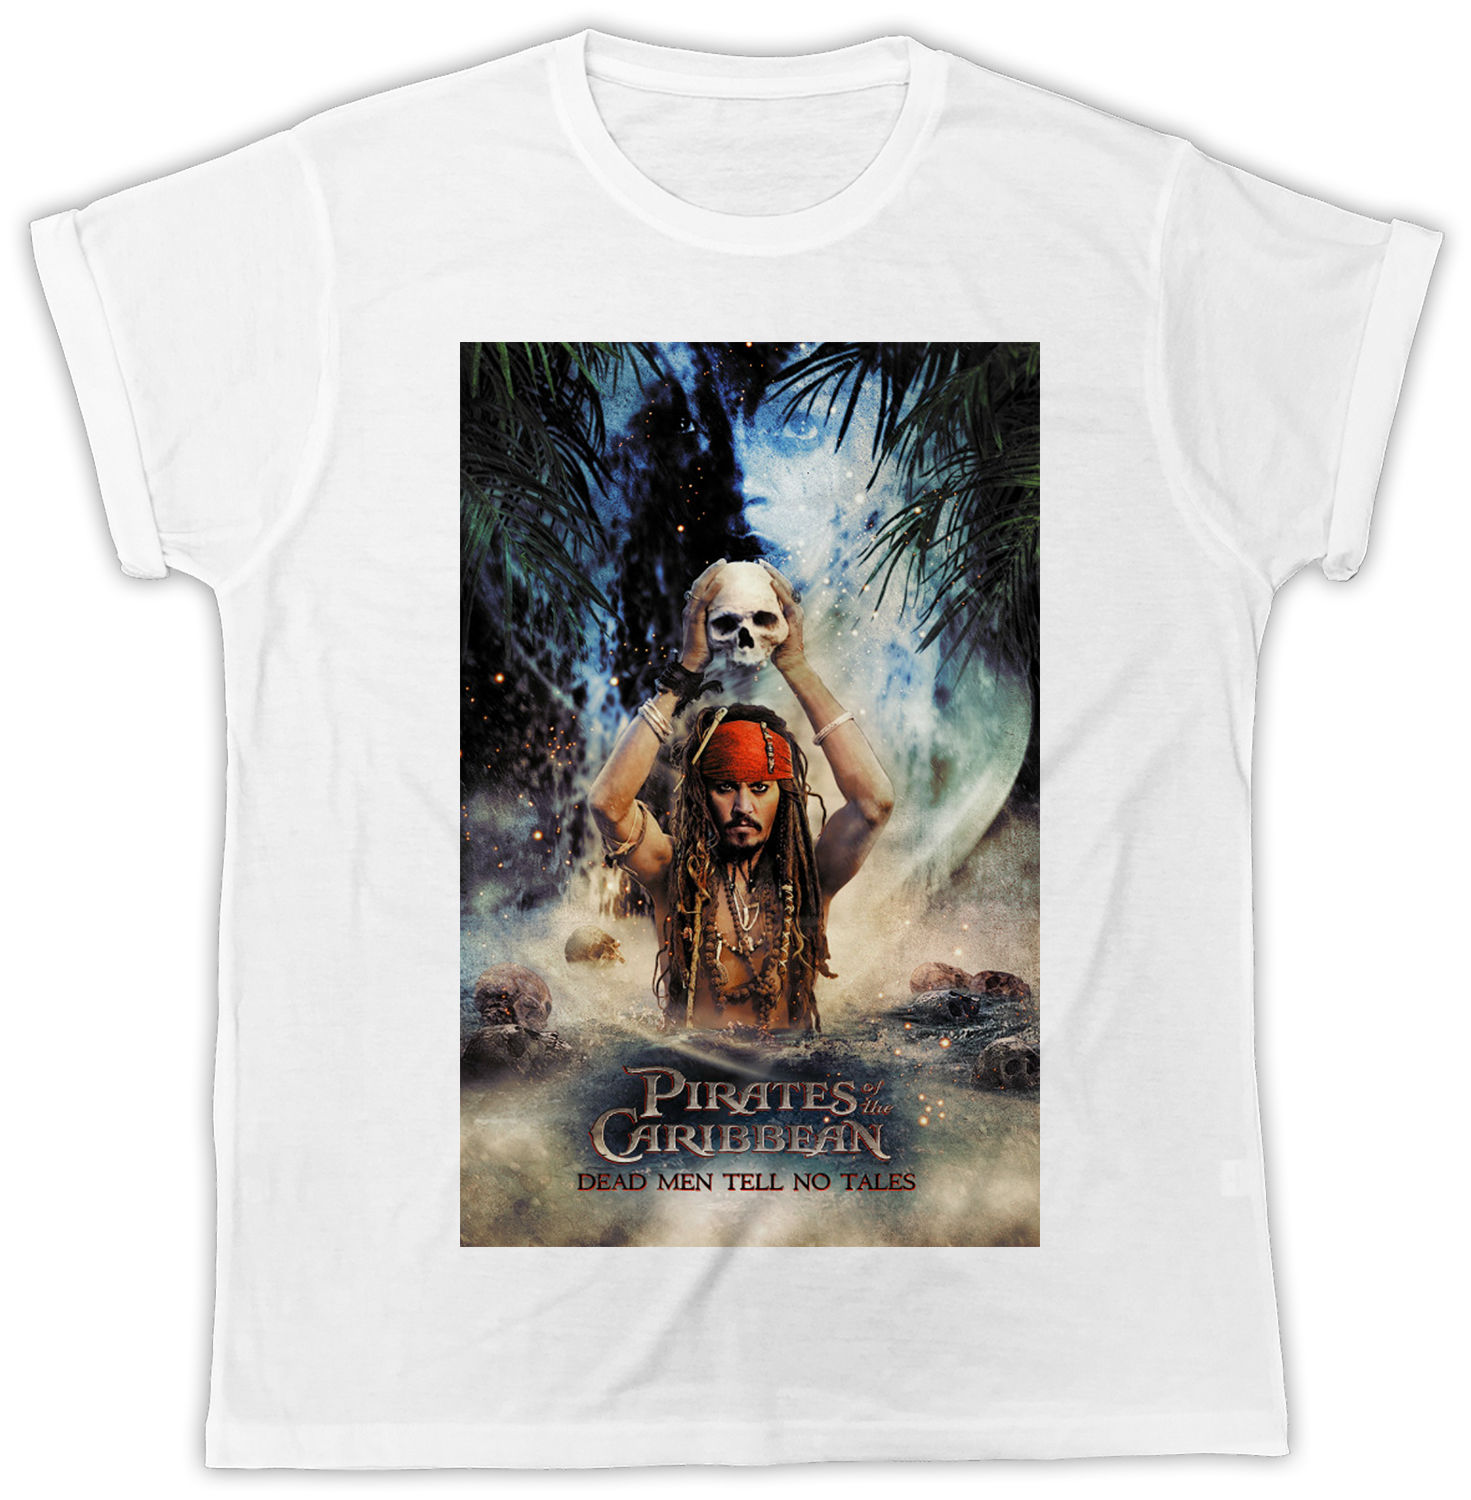 PIRATES OF THE CARIBBEAN COOL FASHION IDEAL GIFT UNISEX MENS TSHIRT Mens T Shirts Summer Hipster Short Sleeve Mens Formal Shirts